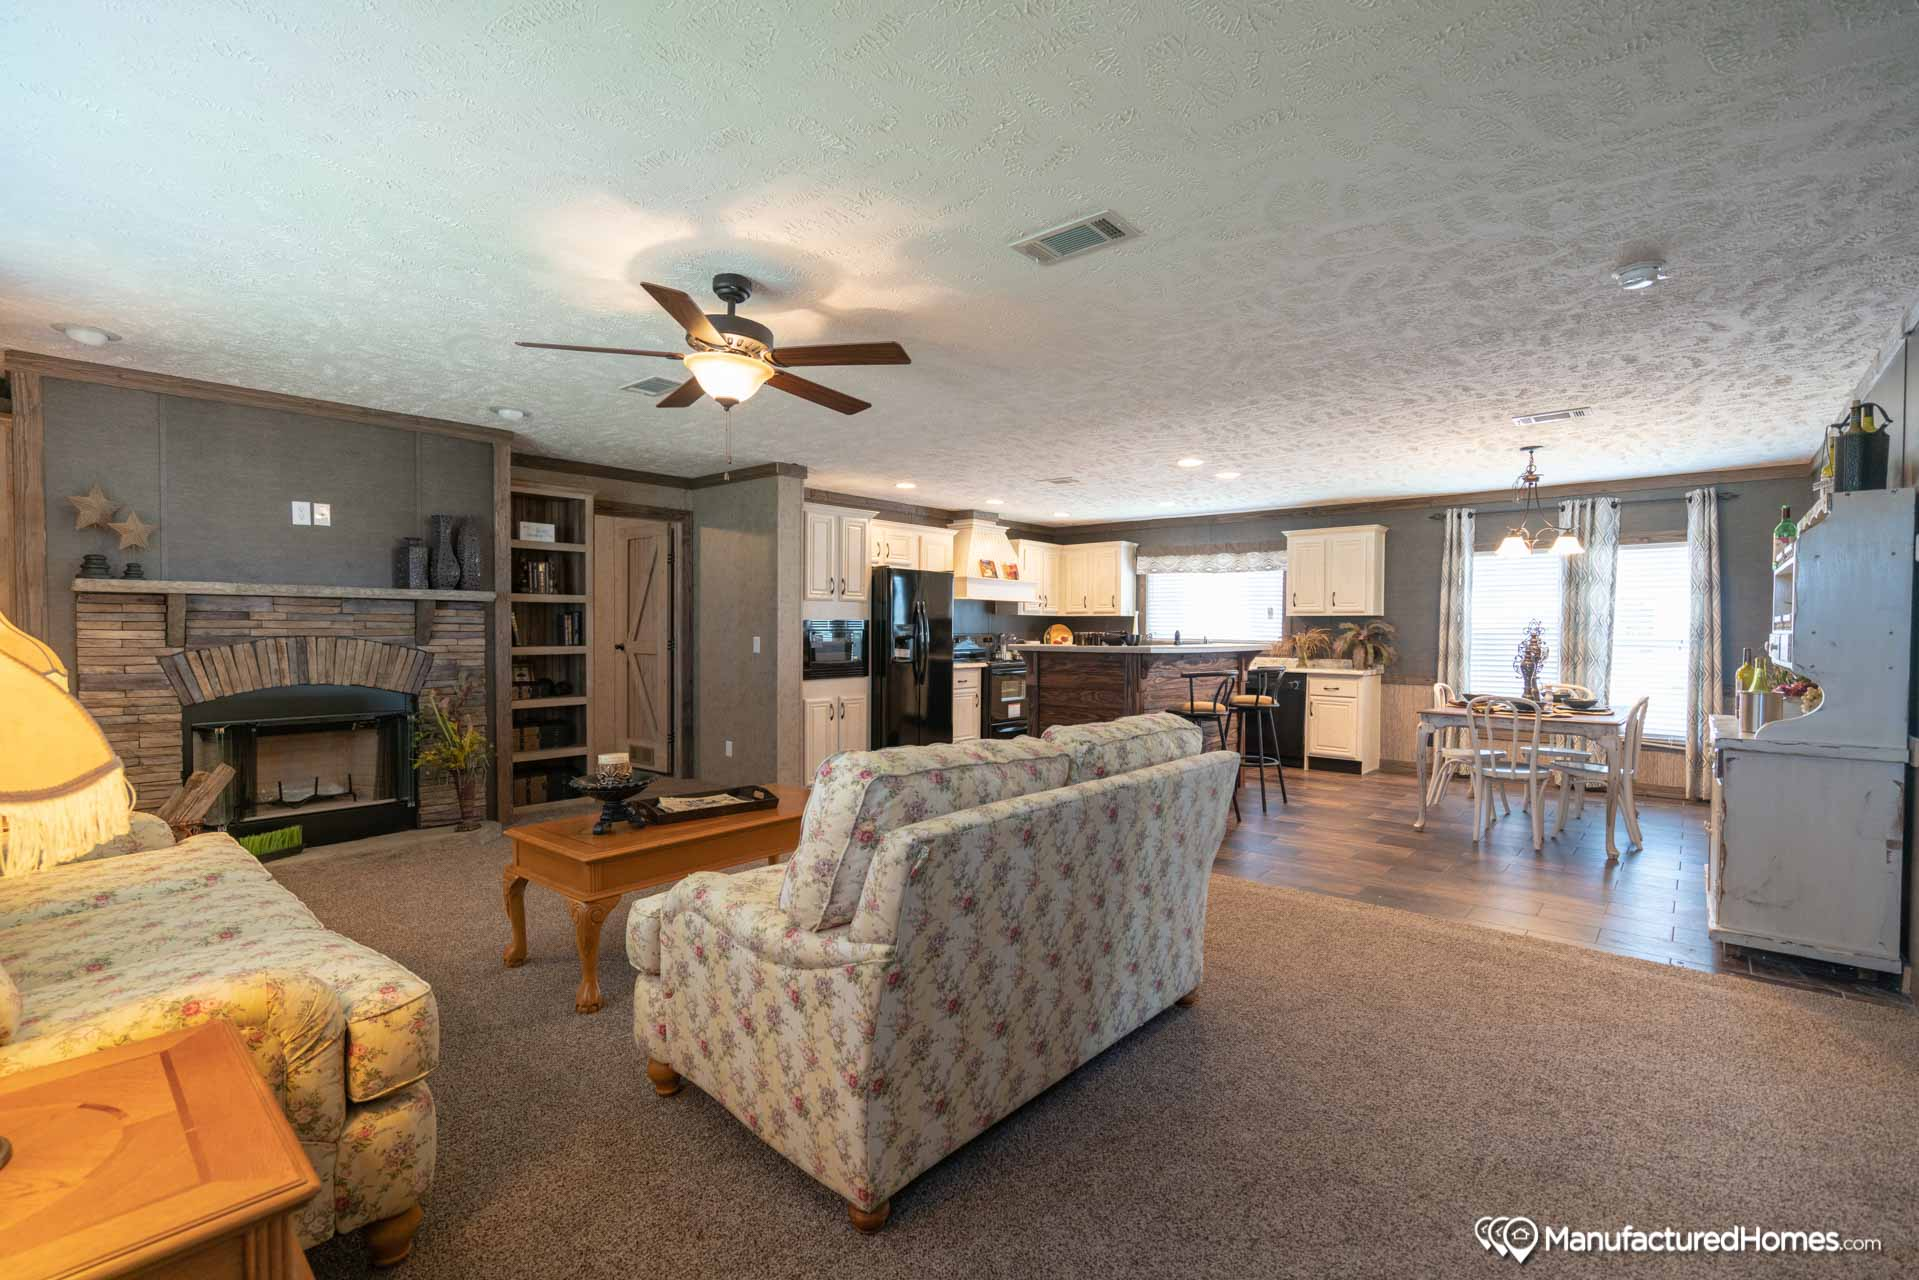 Bolton Homes Dw The Carrollton By Kabco Builders Inc